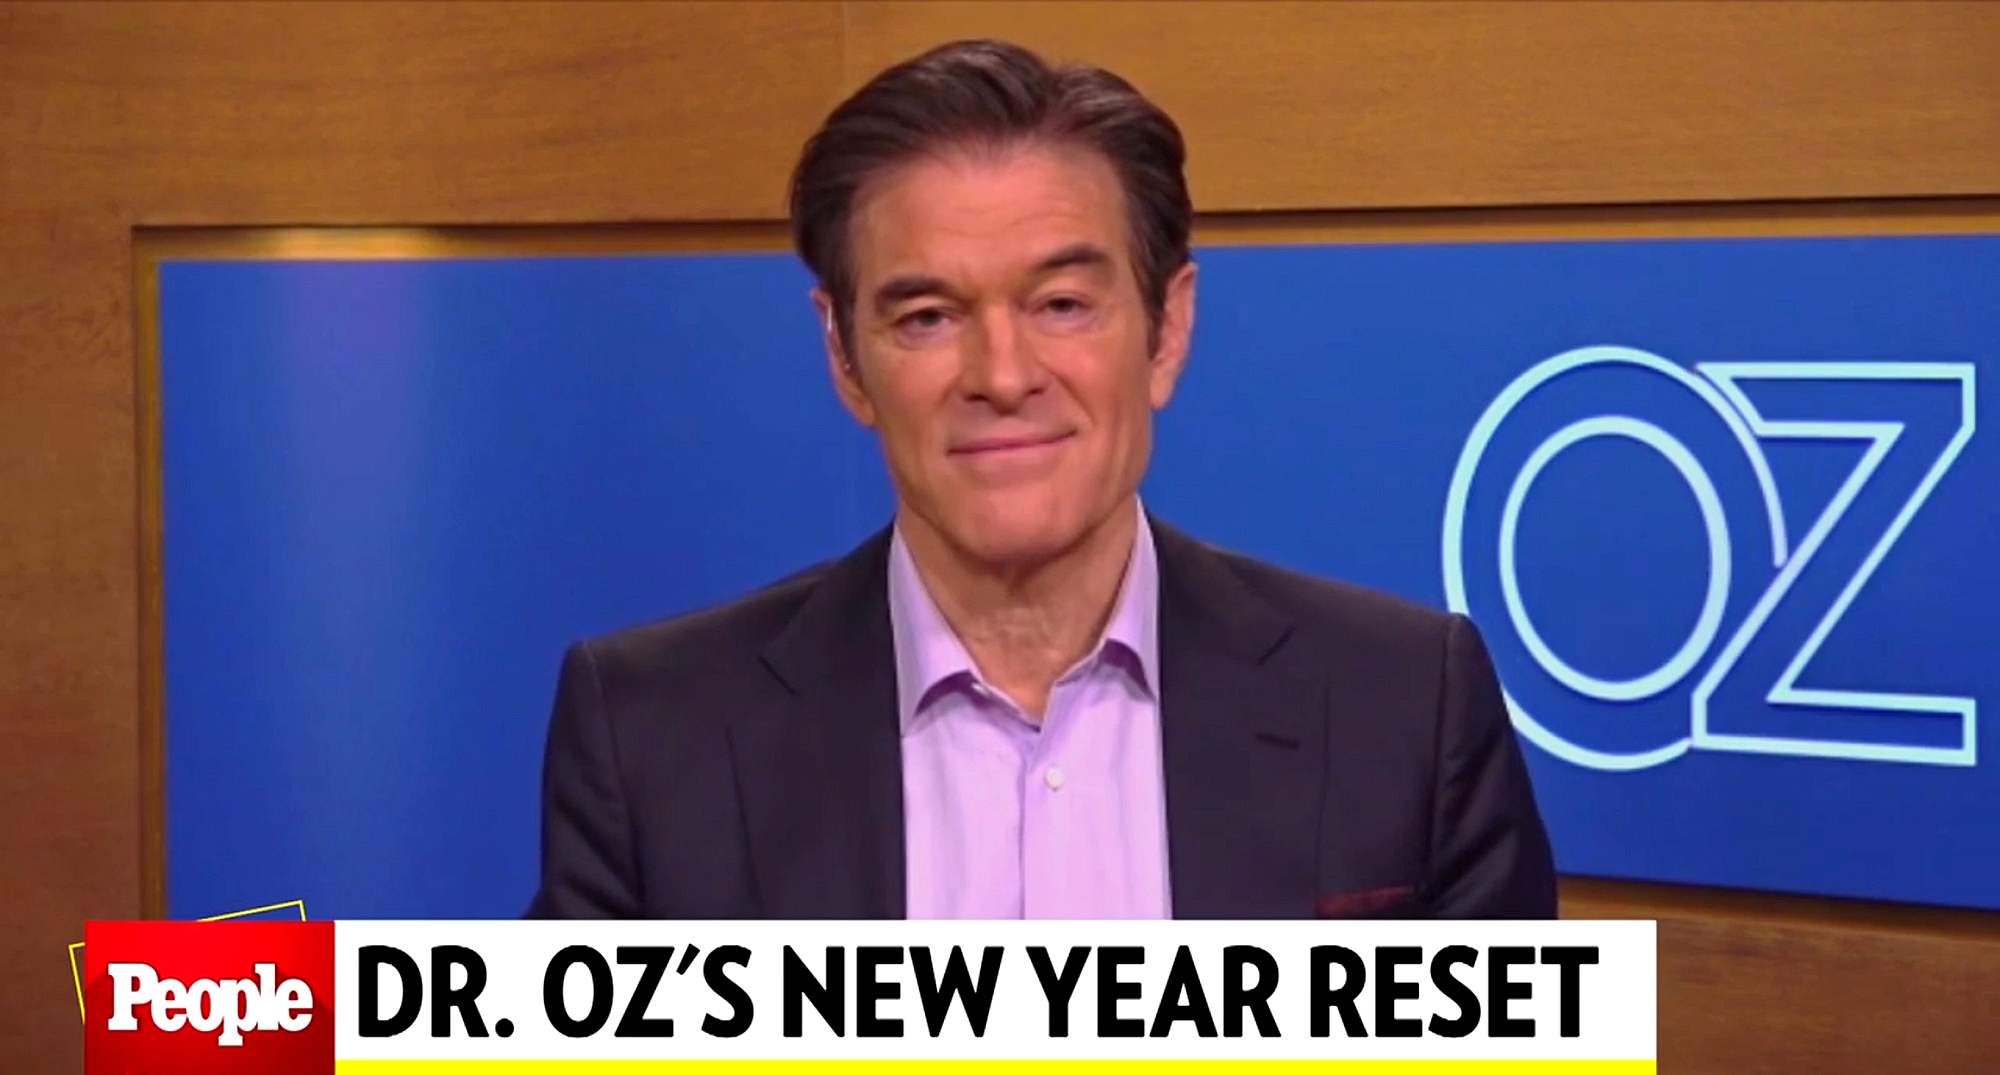 Dr. Oz give new year's resolutions advice on People The Tv Show